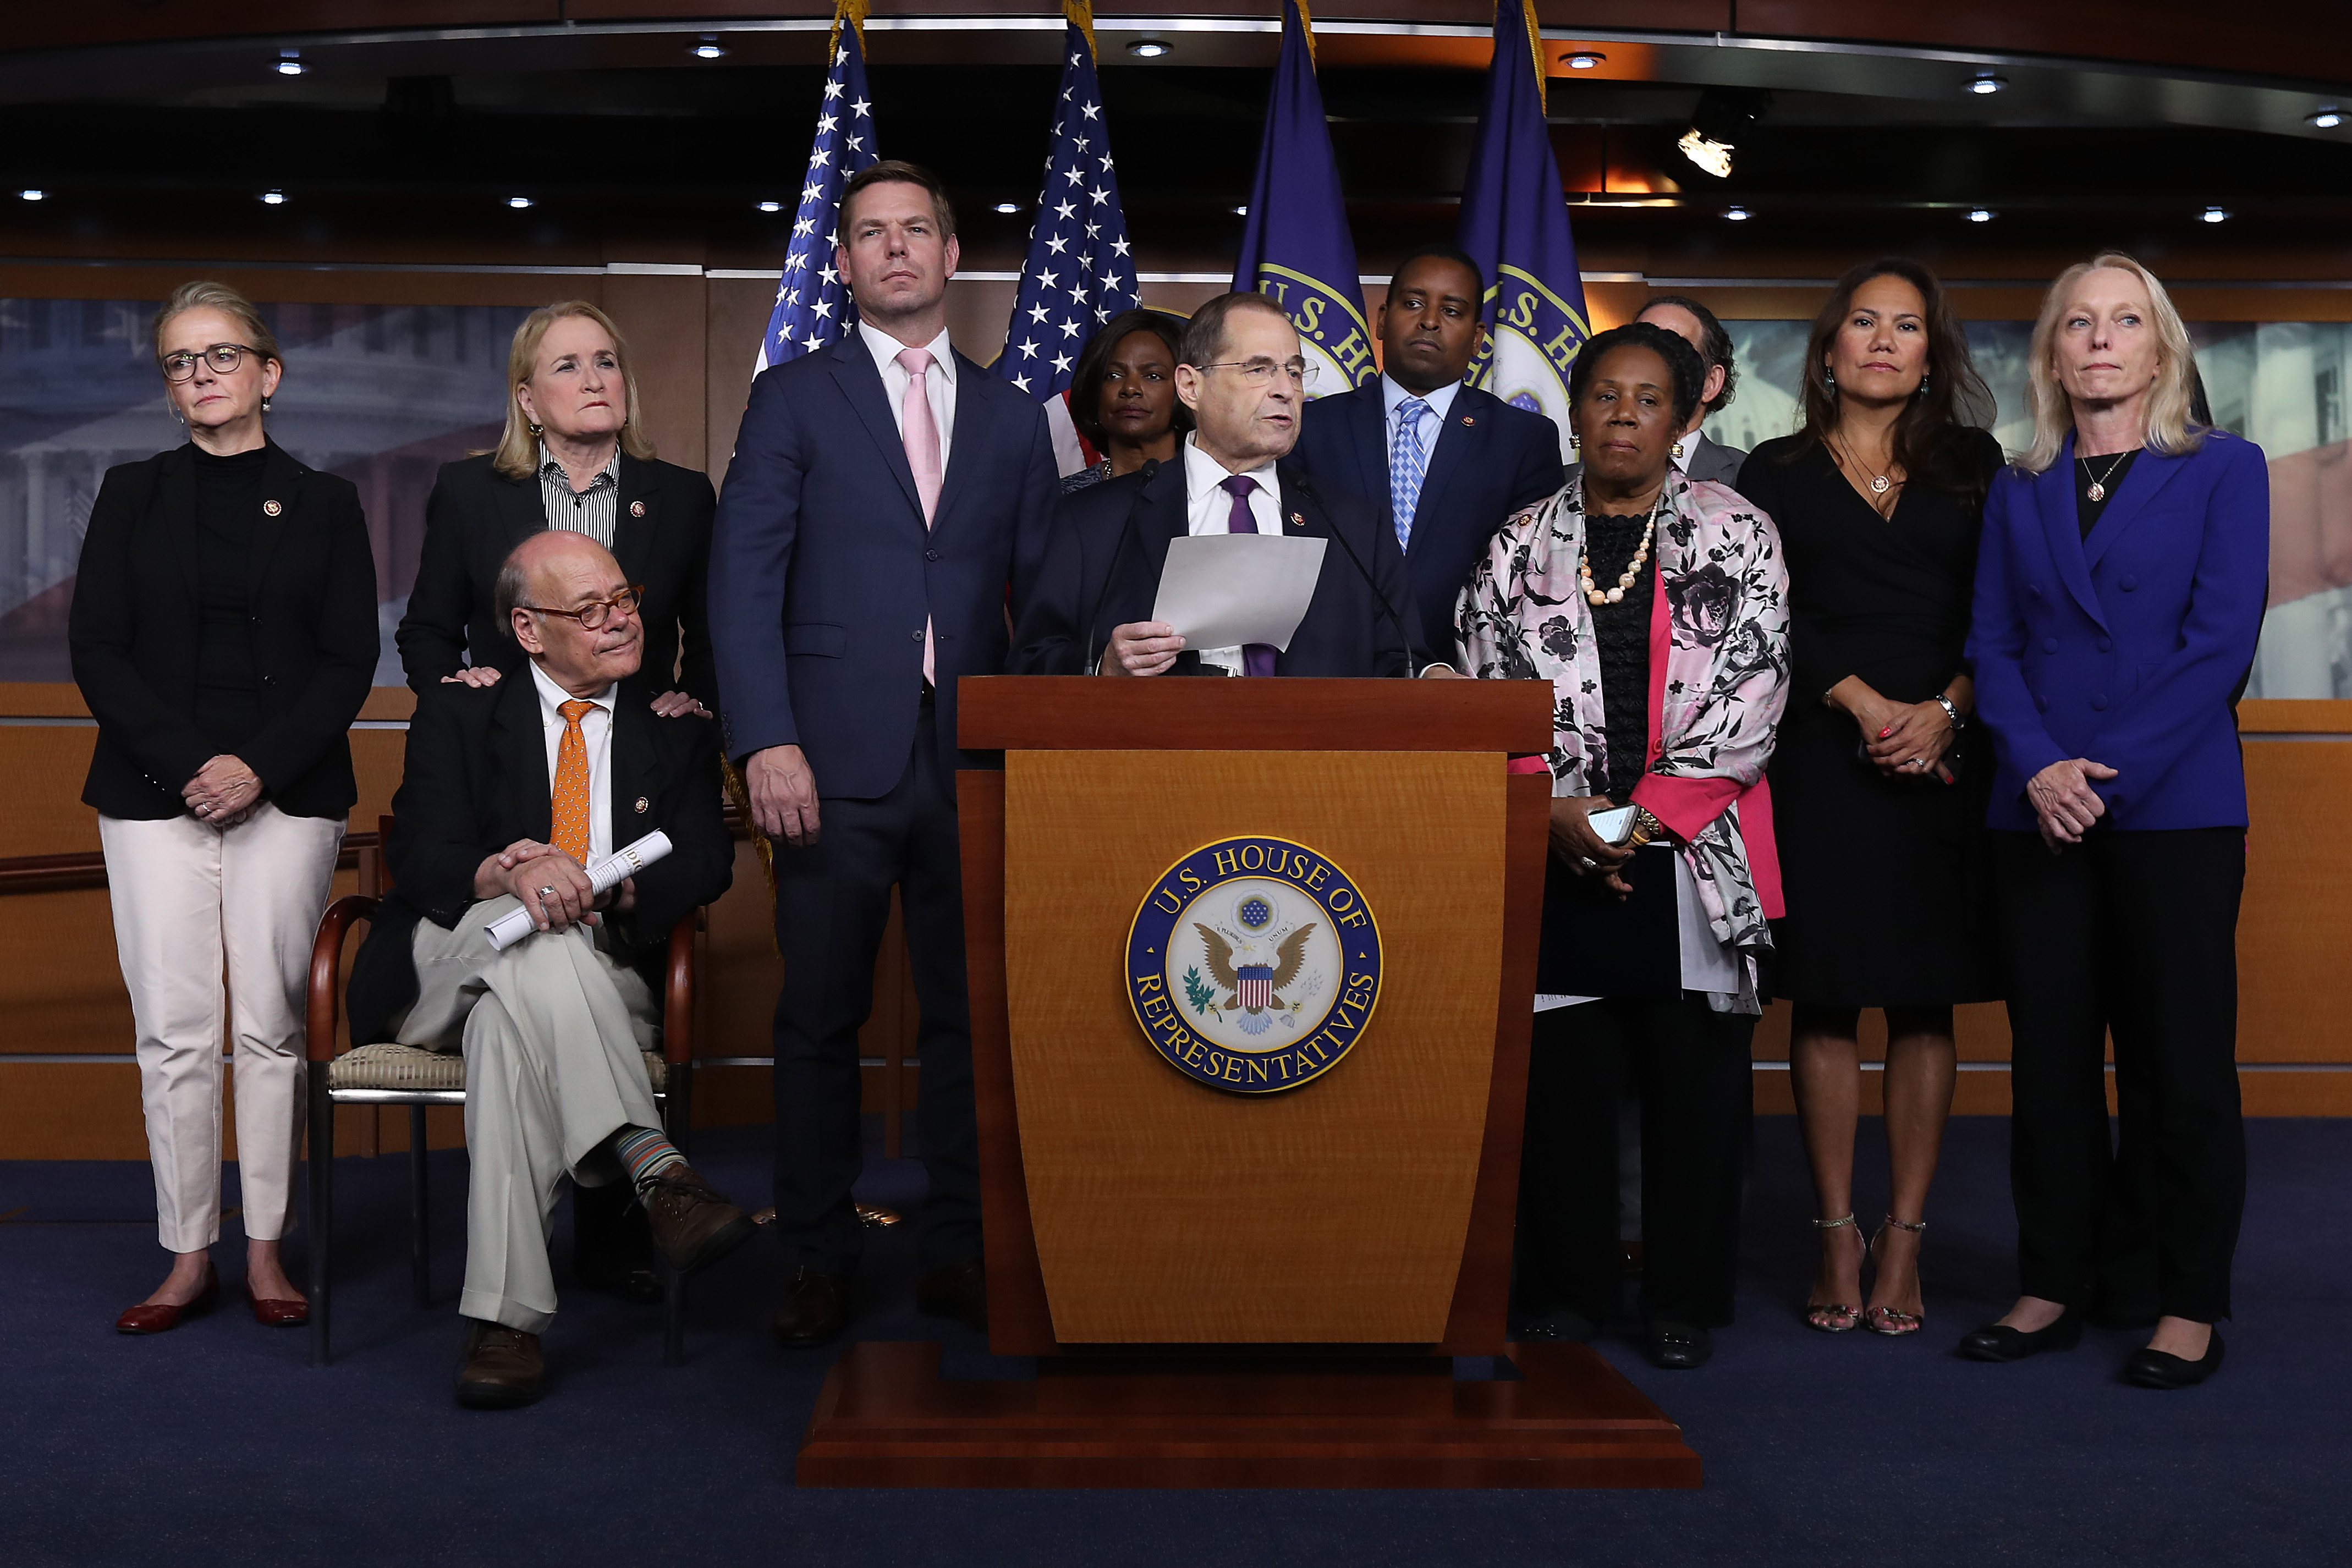 House Judiciary Committee Chairman Jerrold Nadler (D-NY) (C) and fellow Democratic members of the committee speak at the Capitol on July 26, 2019. (Chip Somodevilla/Getty Images)